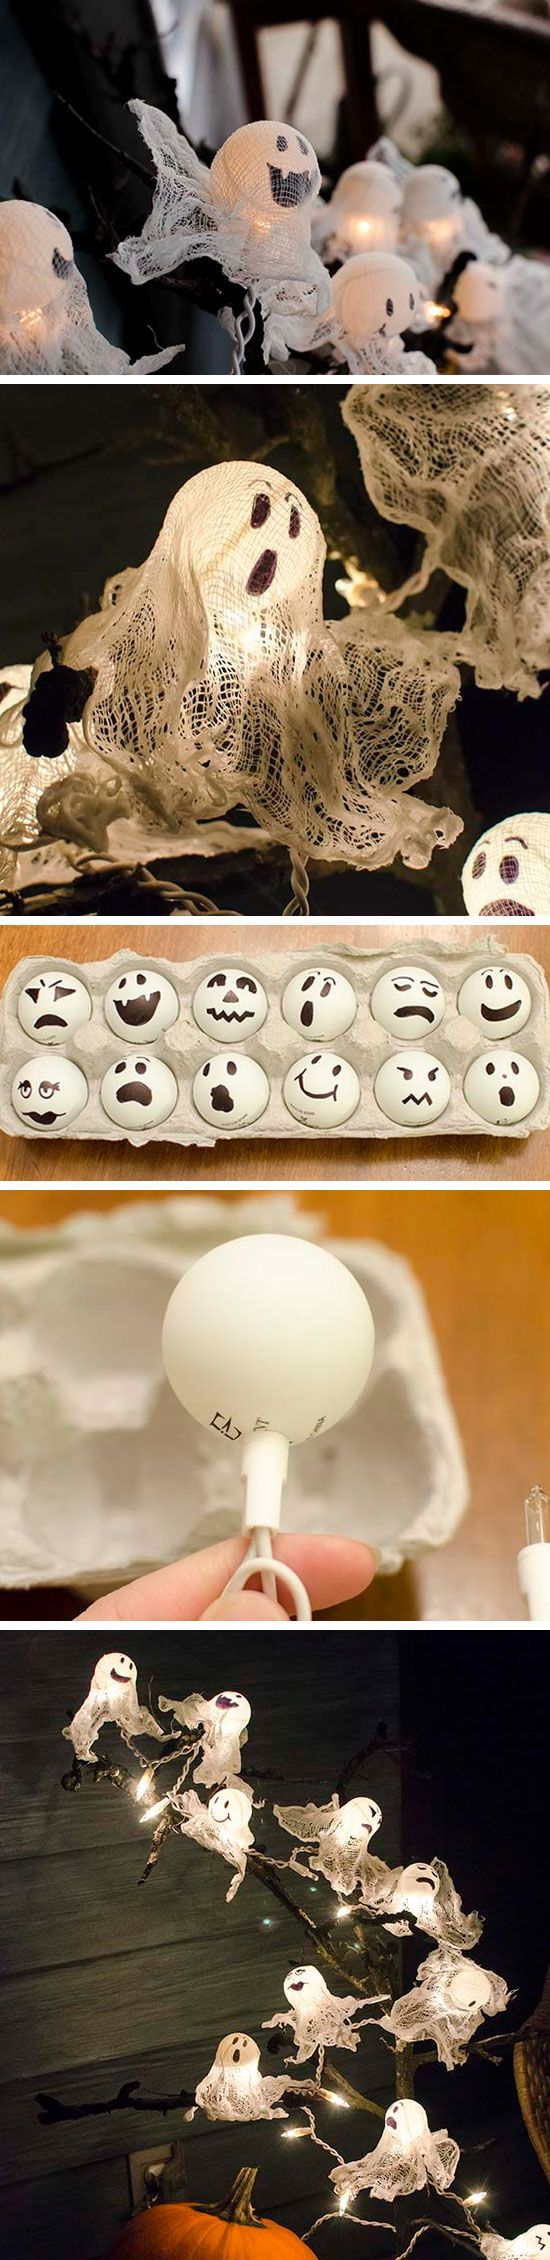 Ping Pong Ball Ghost Lights | DIY Kids Halloween Party Ideas | DIY Halloween Crafts for Kids to Make